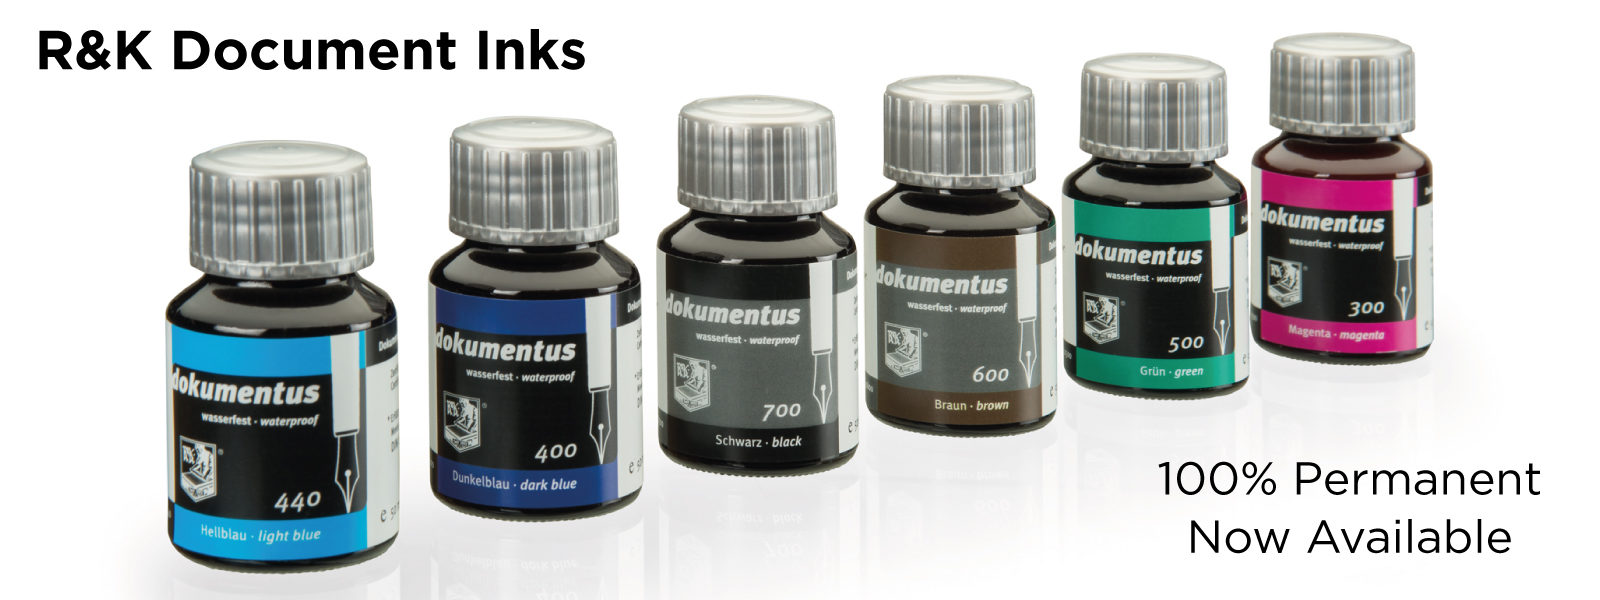 Rohrer & Klingner Document Inks now available at Write Gear